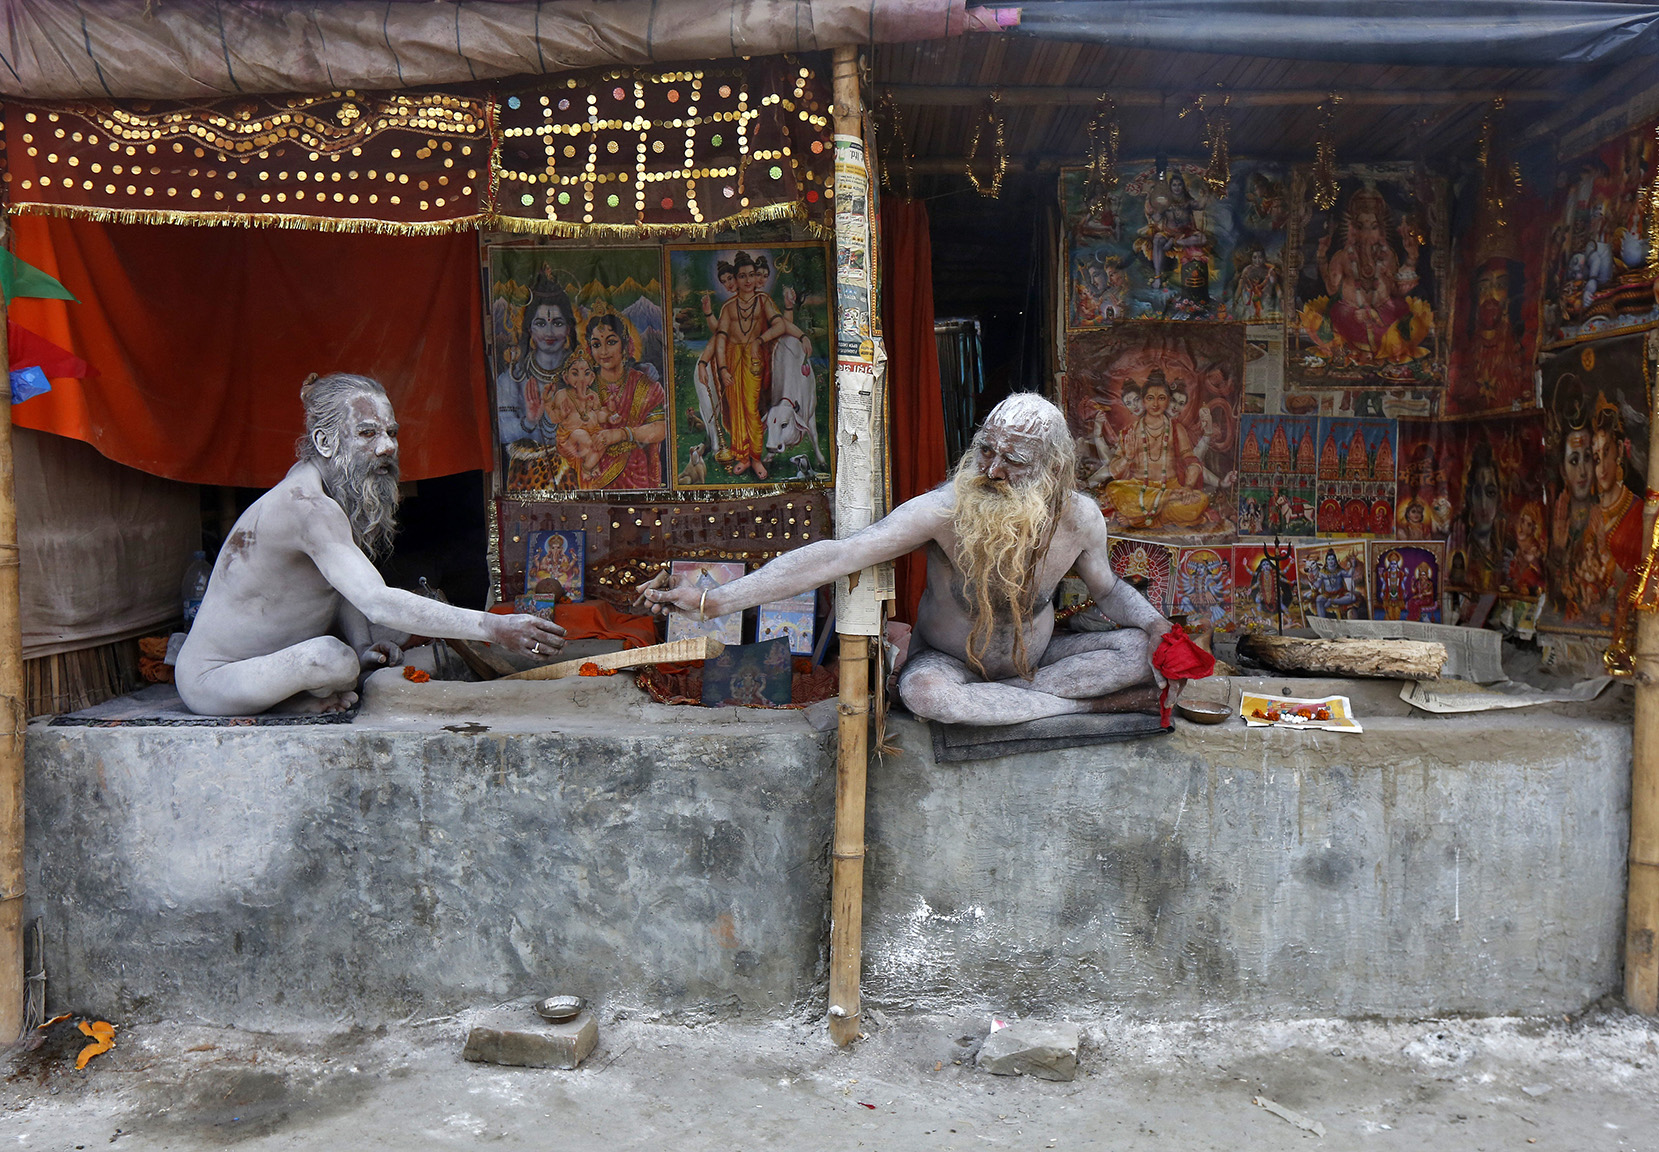 Naga Sadhus or Hindu holy men pass on a chillum to smoke inside their makeshift camps ahead of Makar Sankranti festival at Sagar Island